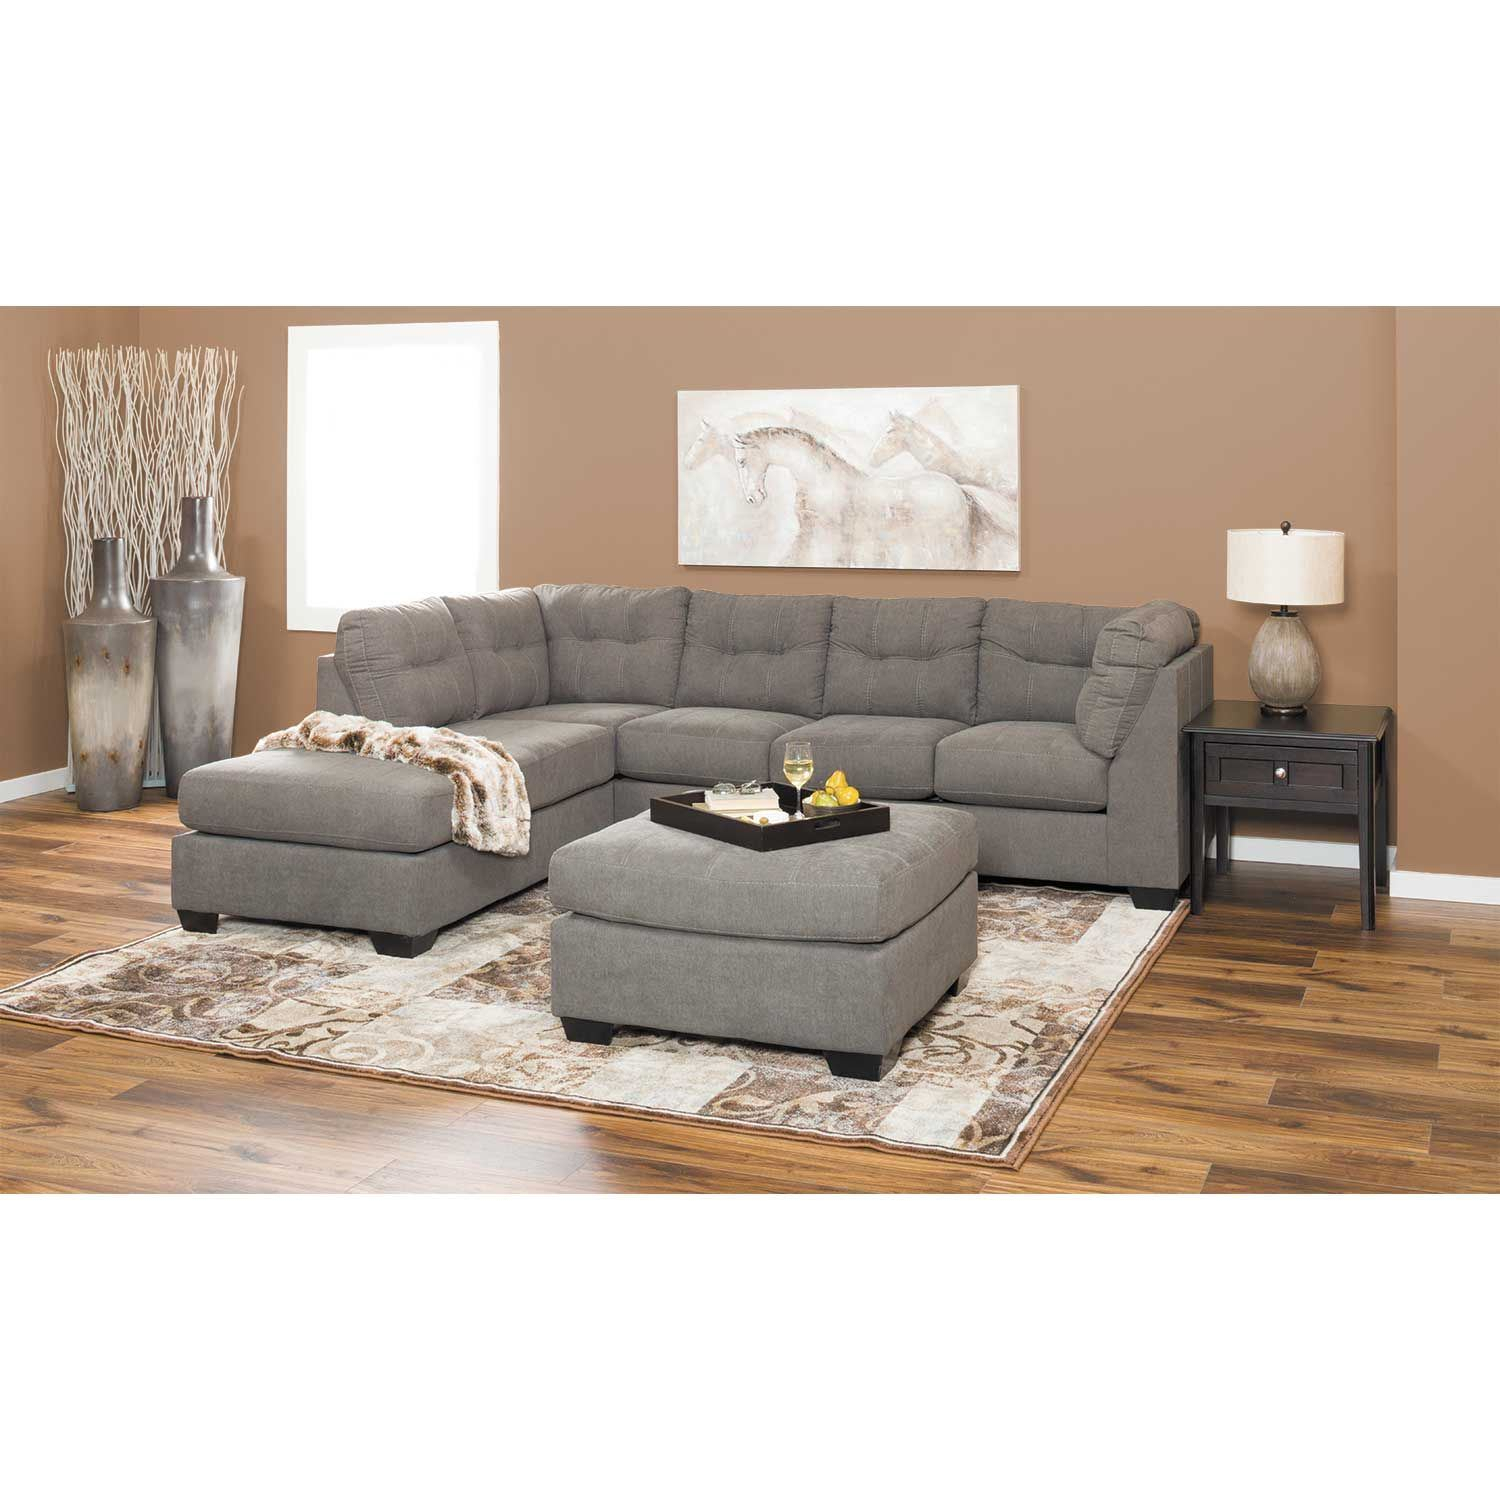 Maier Charcoal 2 Piece Sectional With Laf Chaise 4520016 Inside Aspen 2 Piece Sleeper Sectionals With Laf Chaise (View 13 of 15)